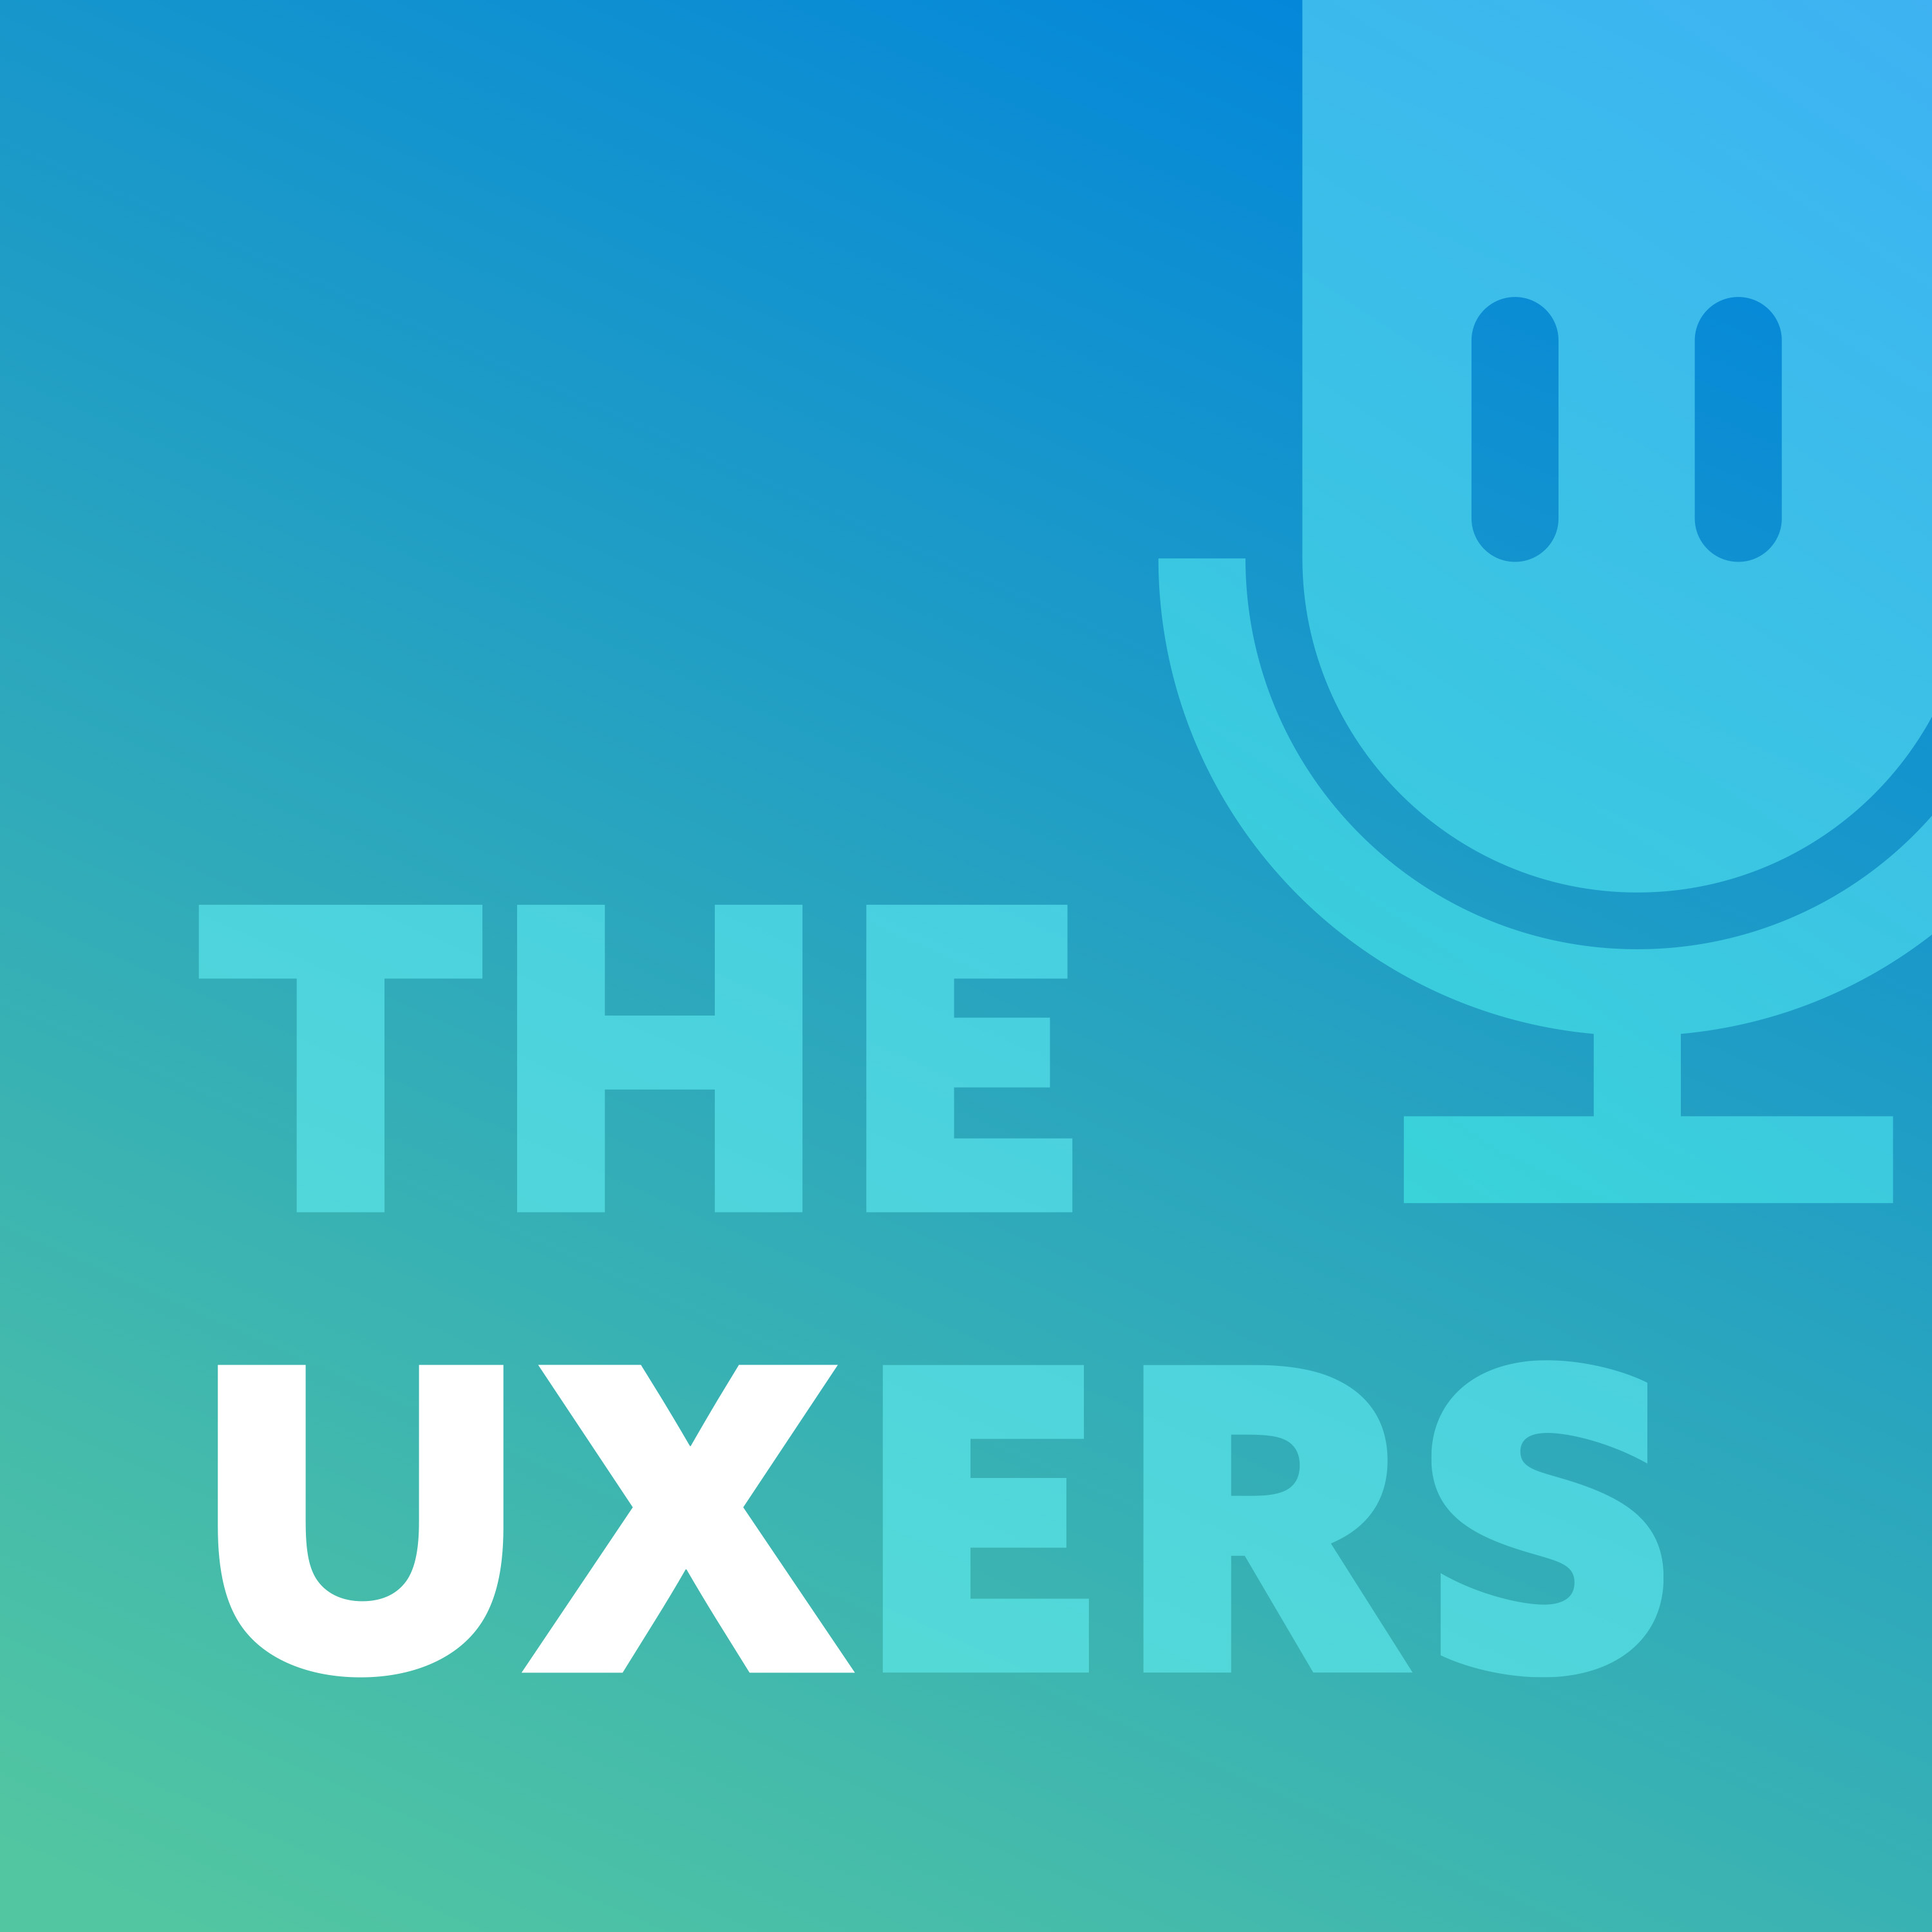 The UXers